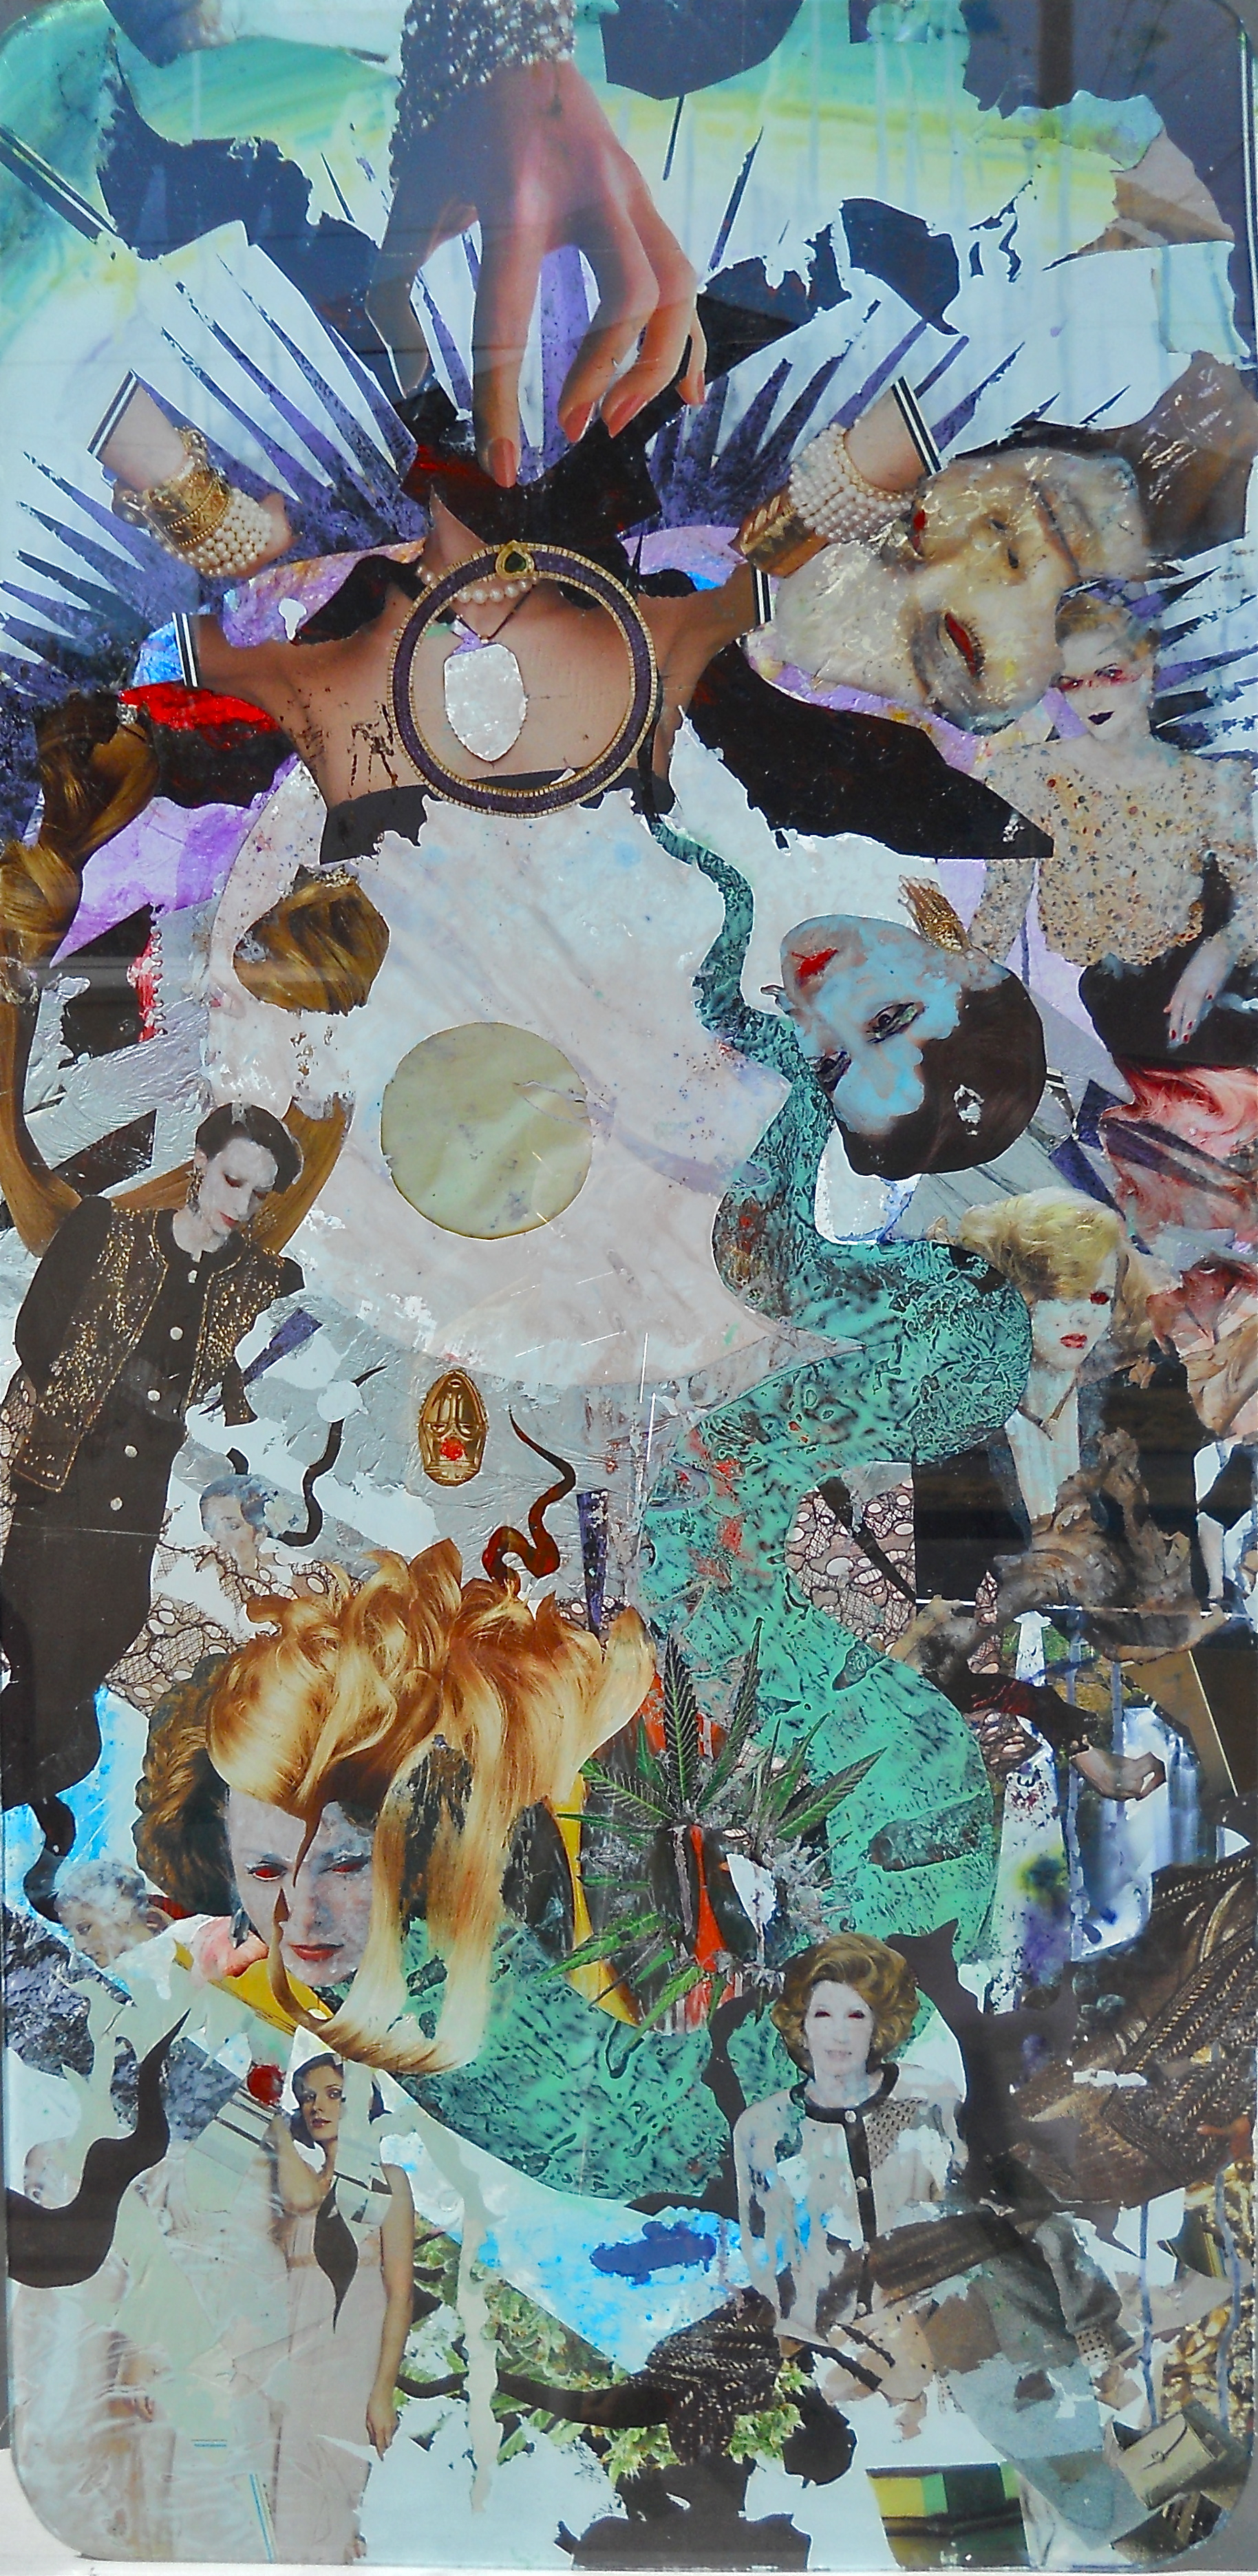 Rising Beyond Oblivion; August 2013, Collage-painting on Glass, 4x2 feet